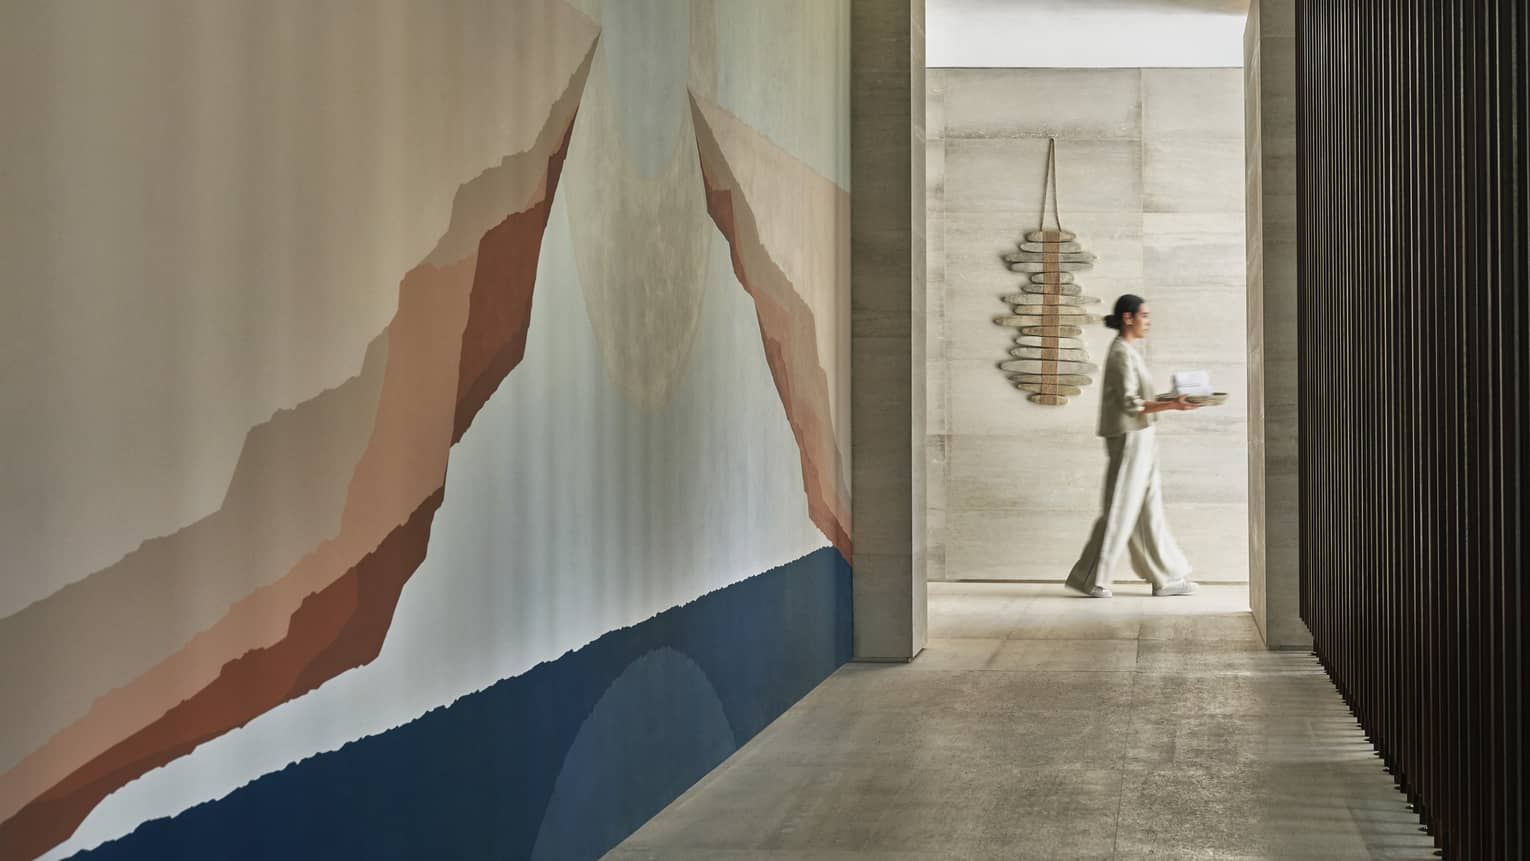 A four seasons spa staff carries a tray through a white marble corridor